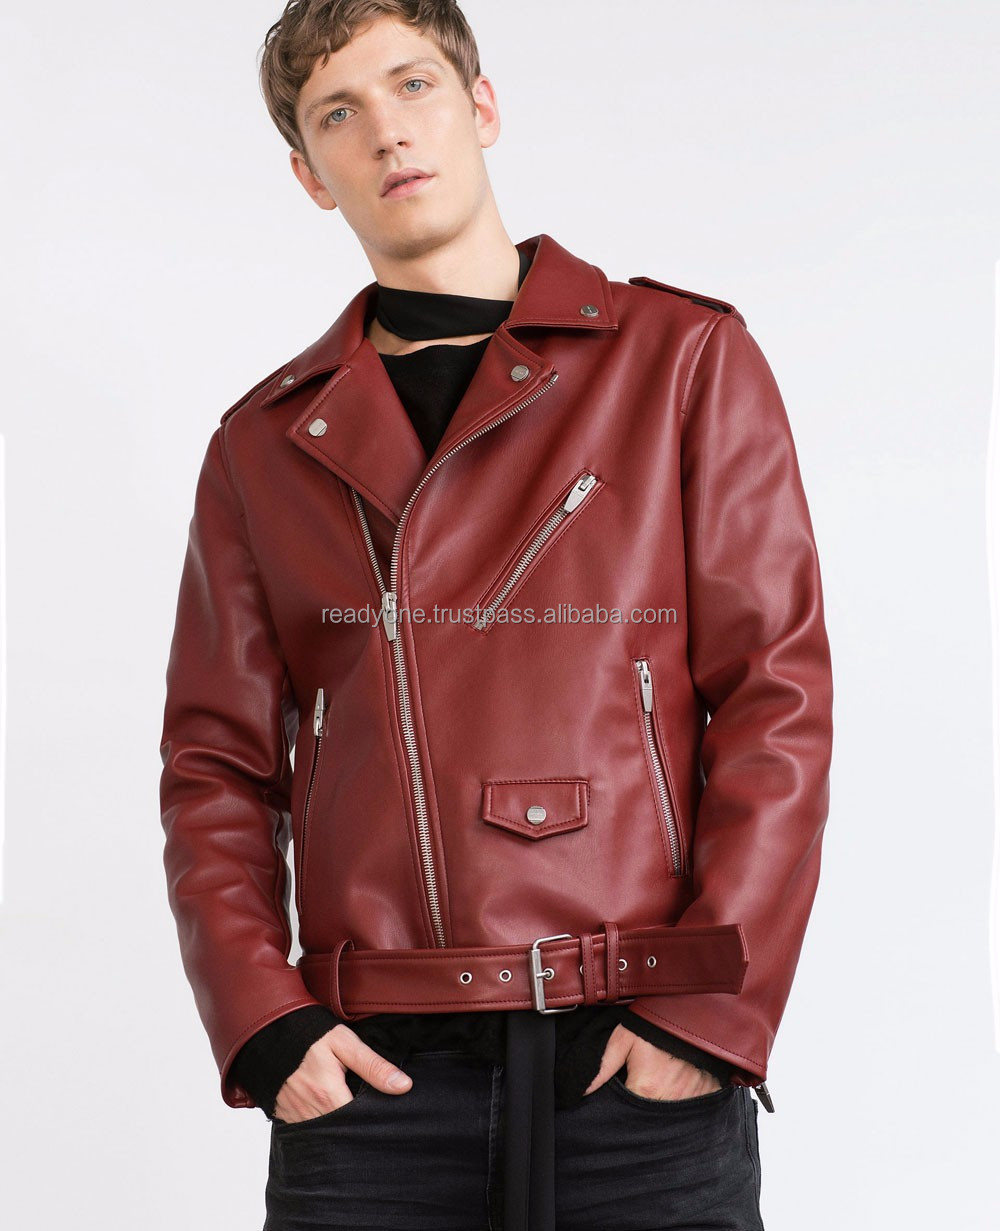 Hot selling hooded down padding zipper winter fown jacket for men